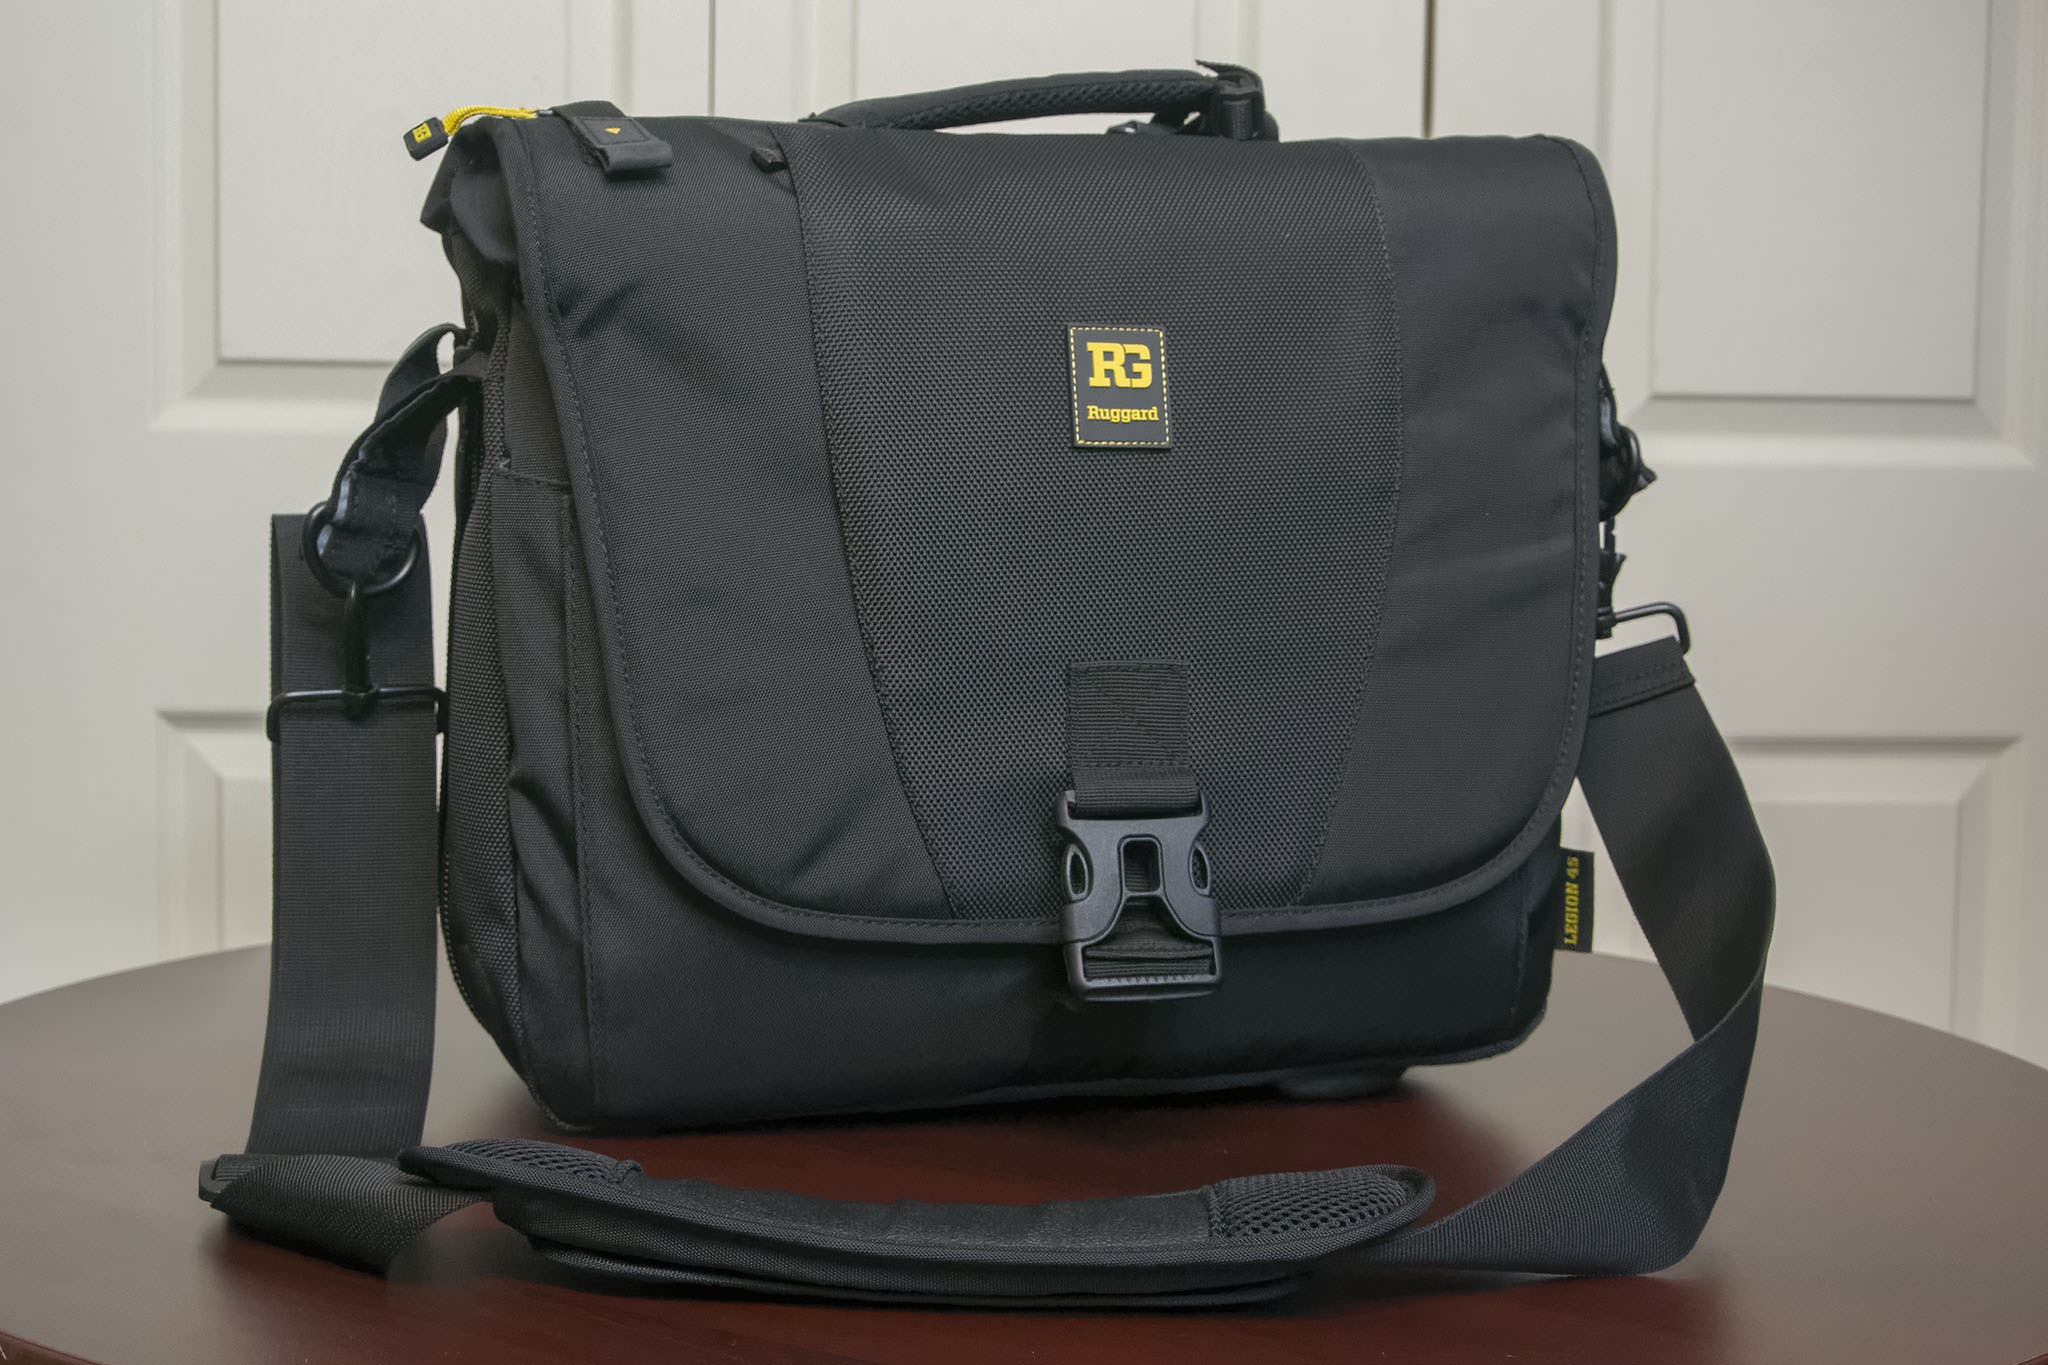 5ee957d877a5 Ruggard Legion 45 Messenger Bag Review - Photography Life